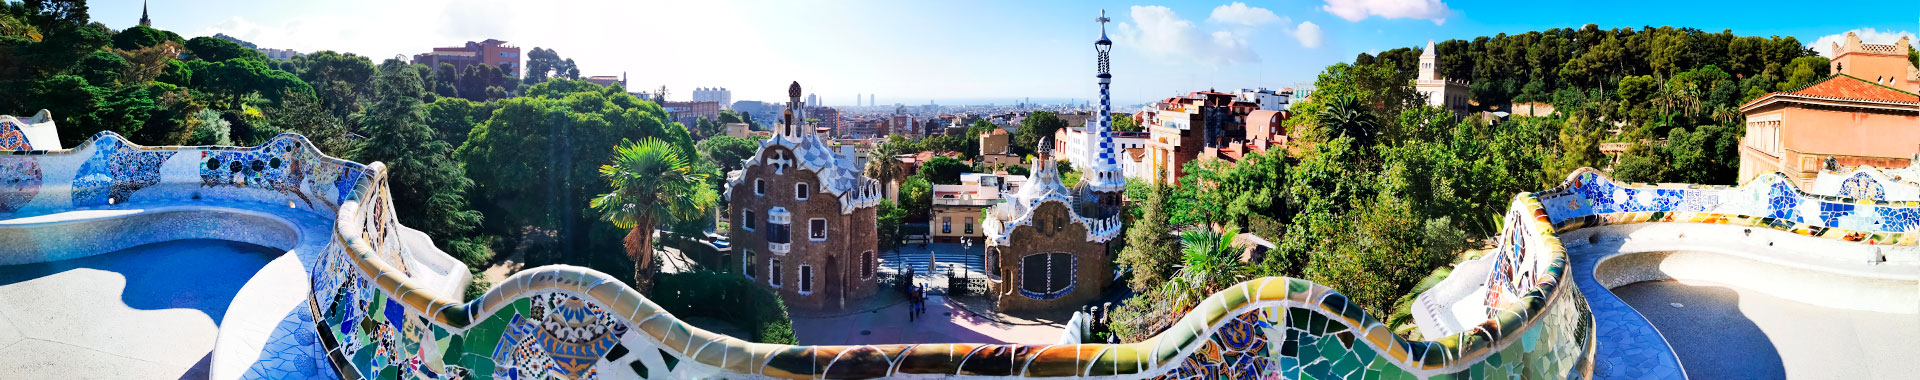 Welcome to Park Güell